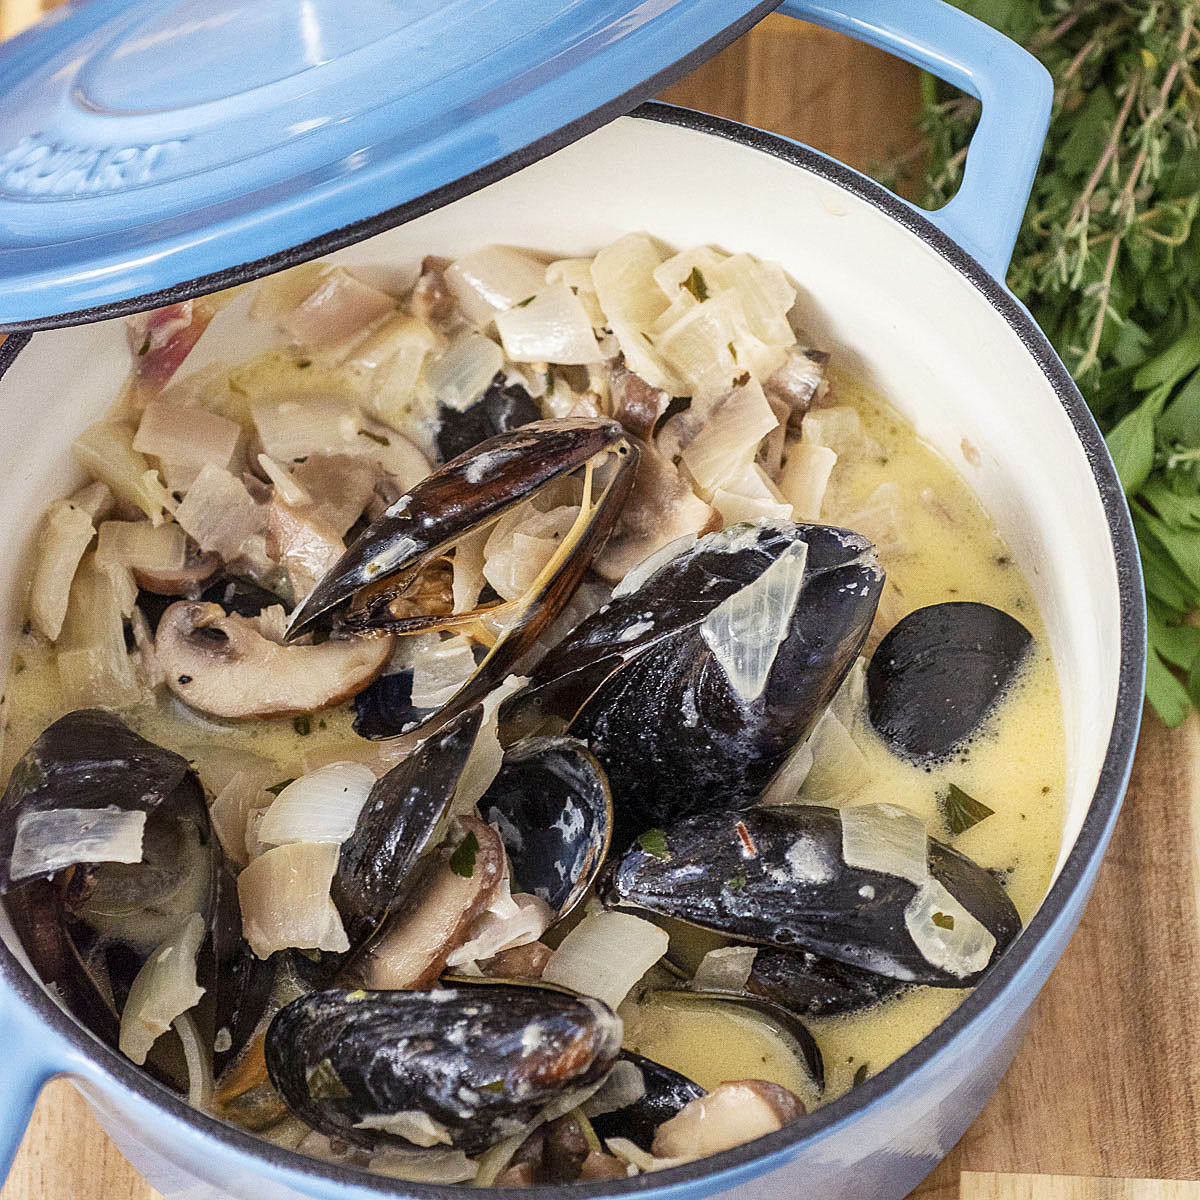 Looking down into a mini Dutch oven of Normandy-style mussels in cider sauce, with a handful of parsley and thyme behind the pot